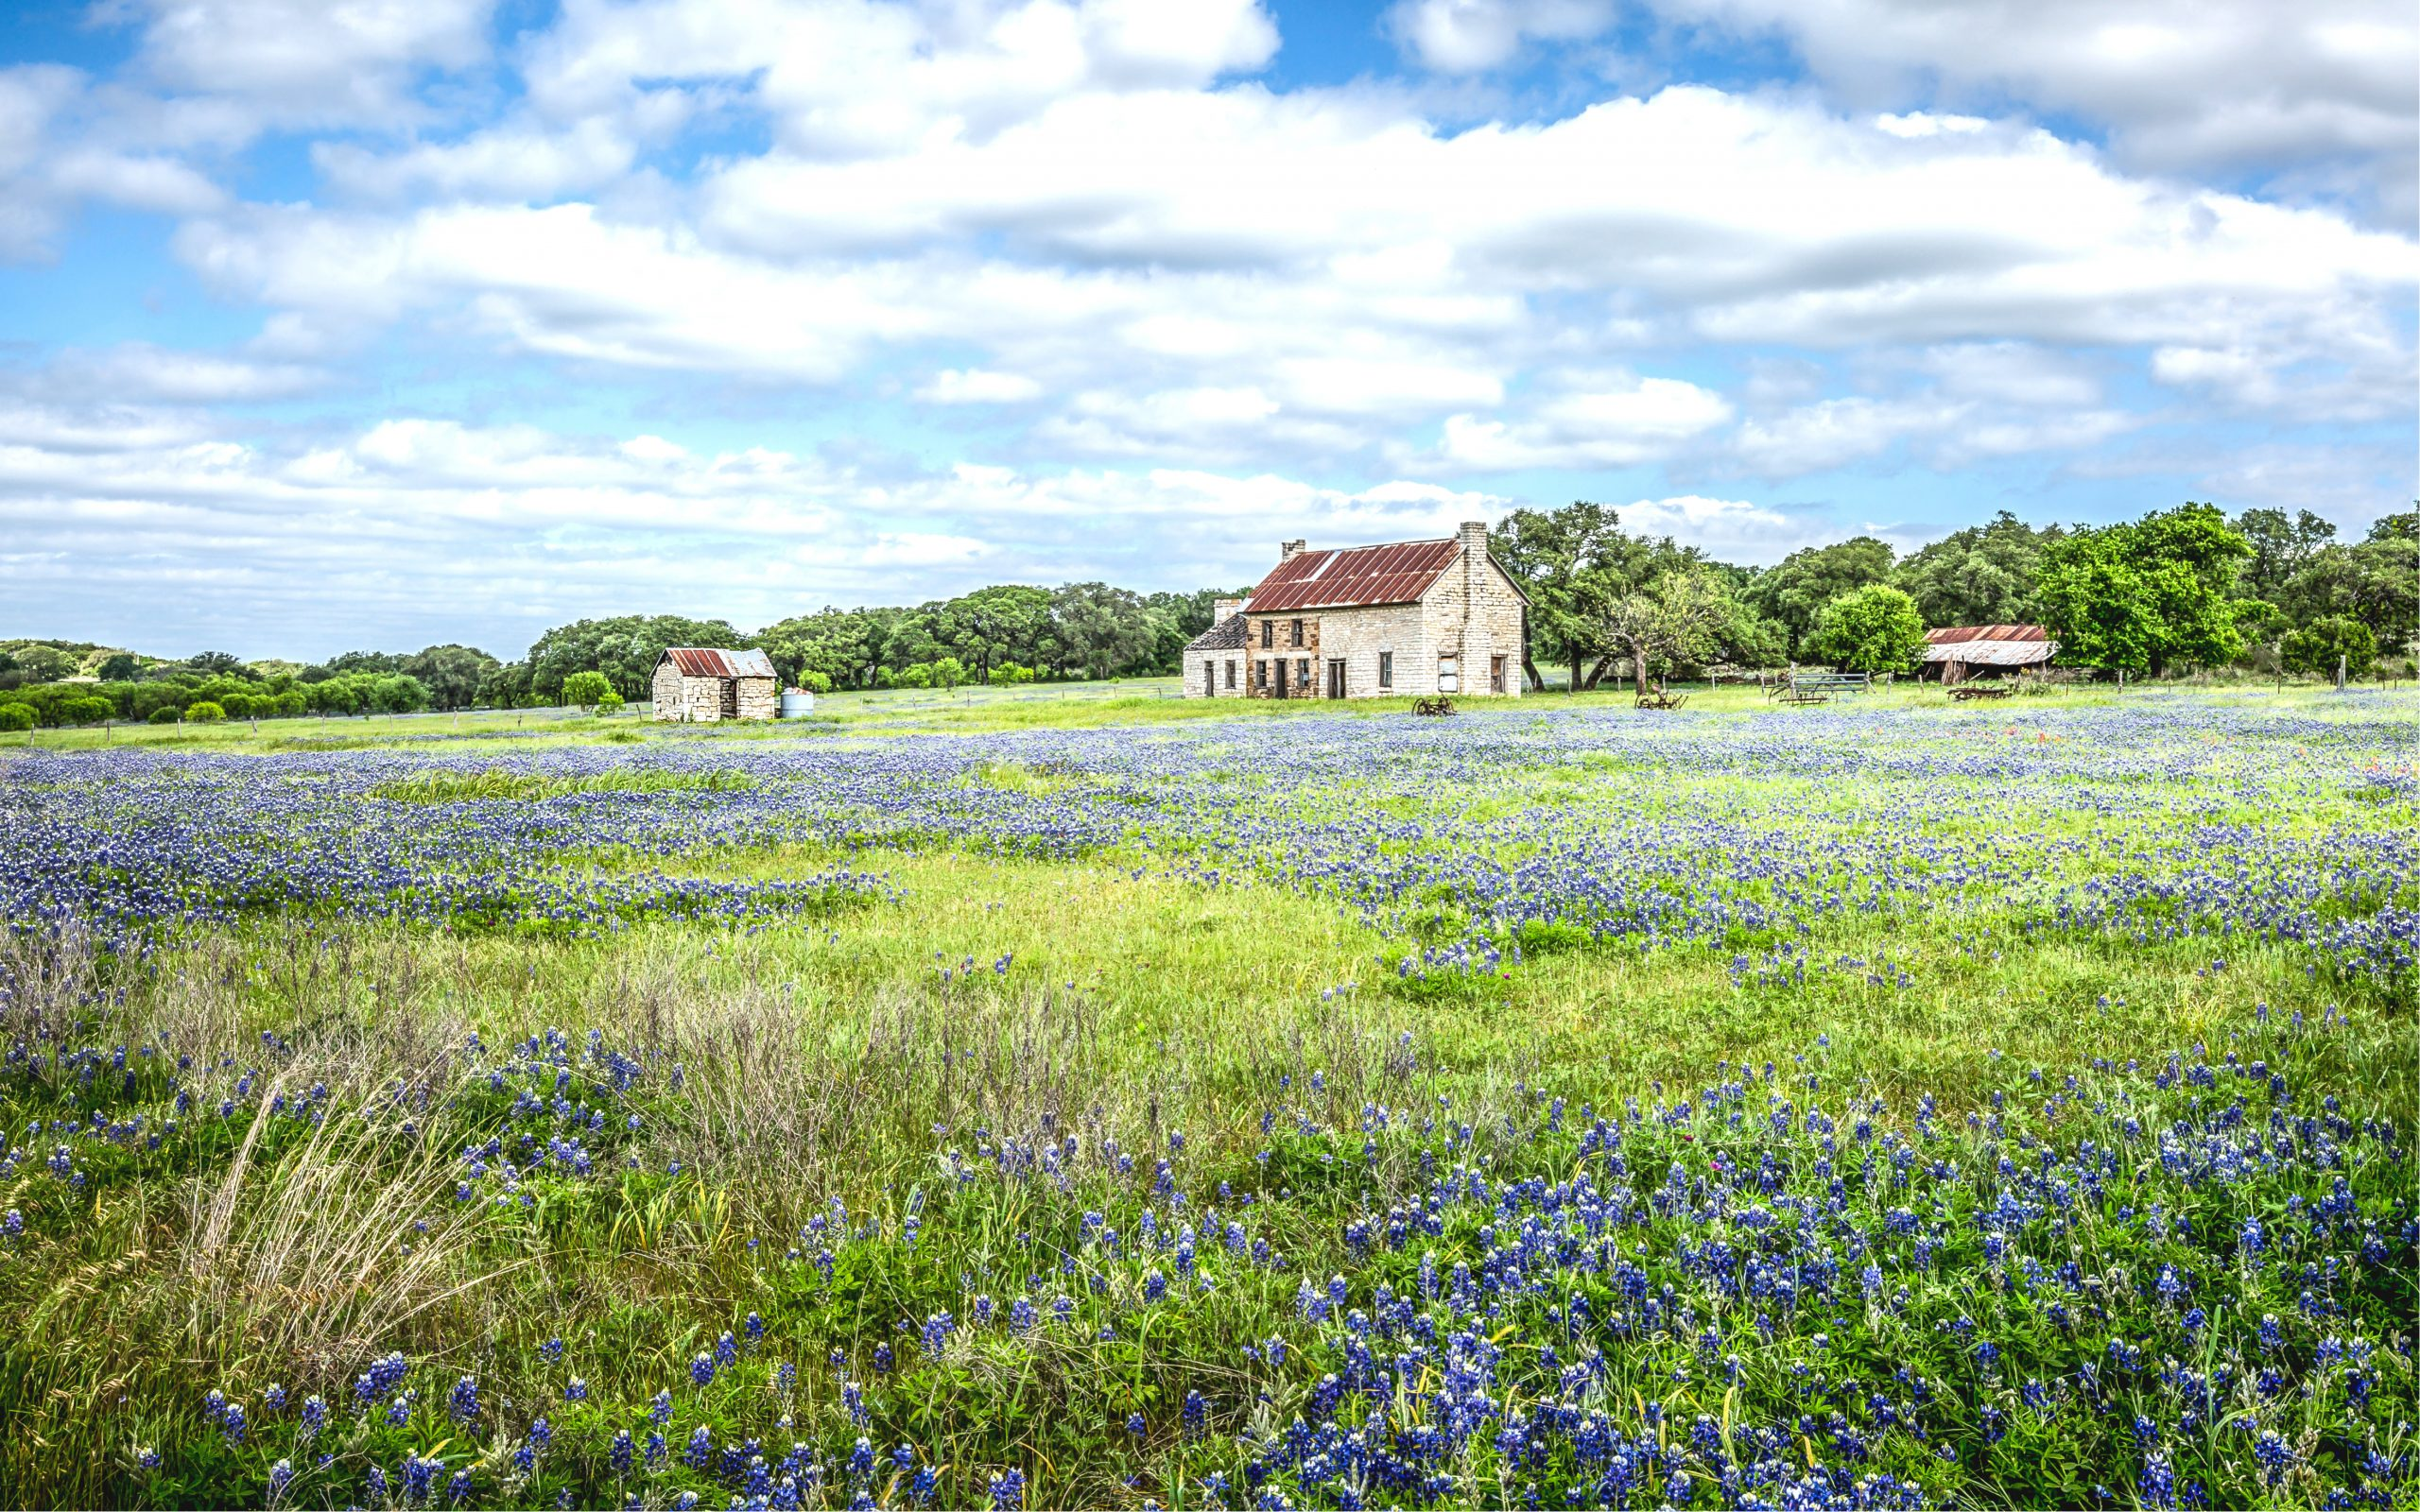 19th century farmhouse in marble falls tx with a field of bluebonnets in the foreground. Visiting this scenic spot is one of the most fun things to do in marble falls tx